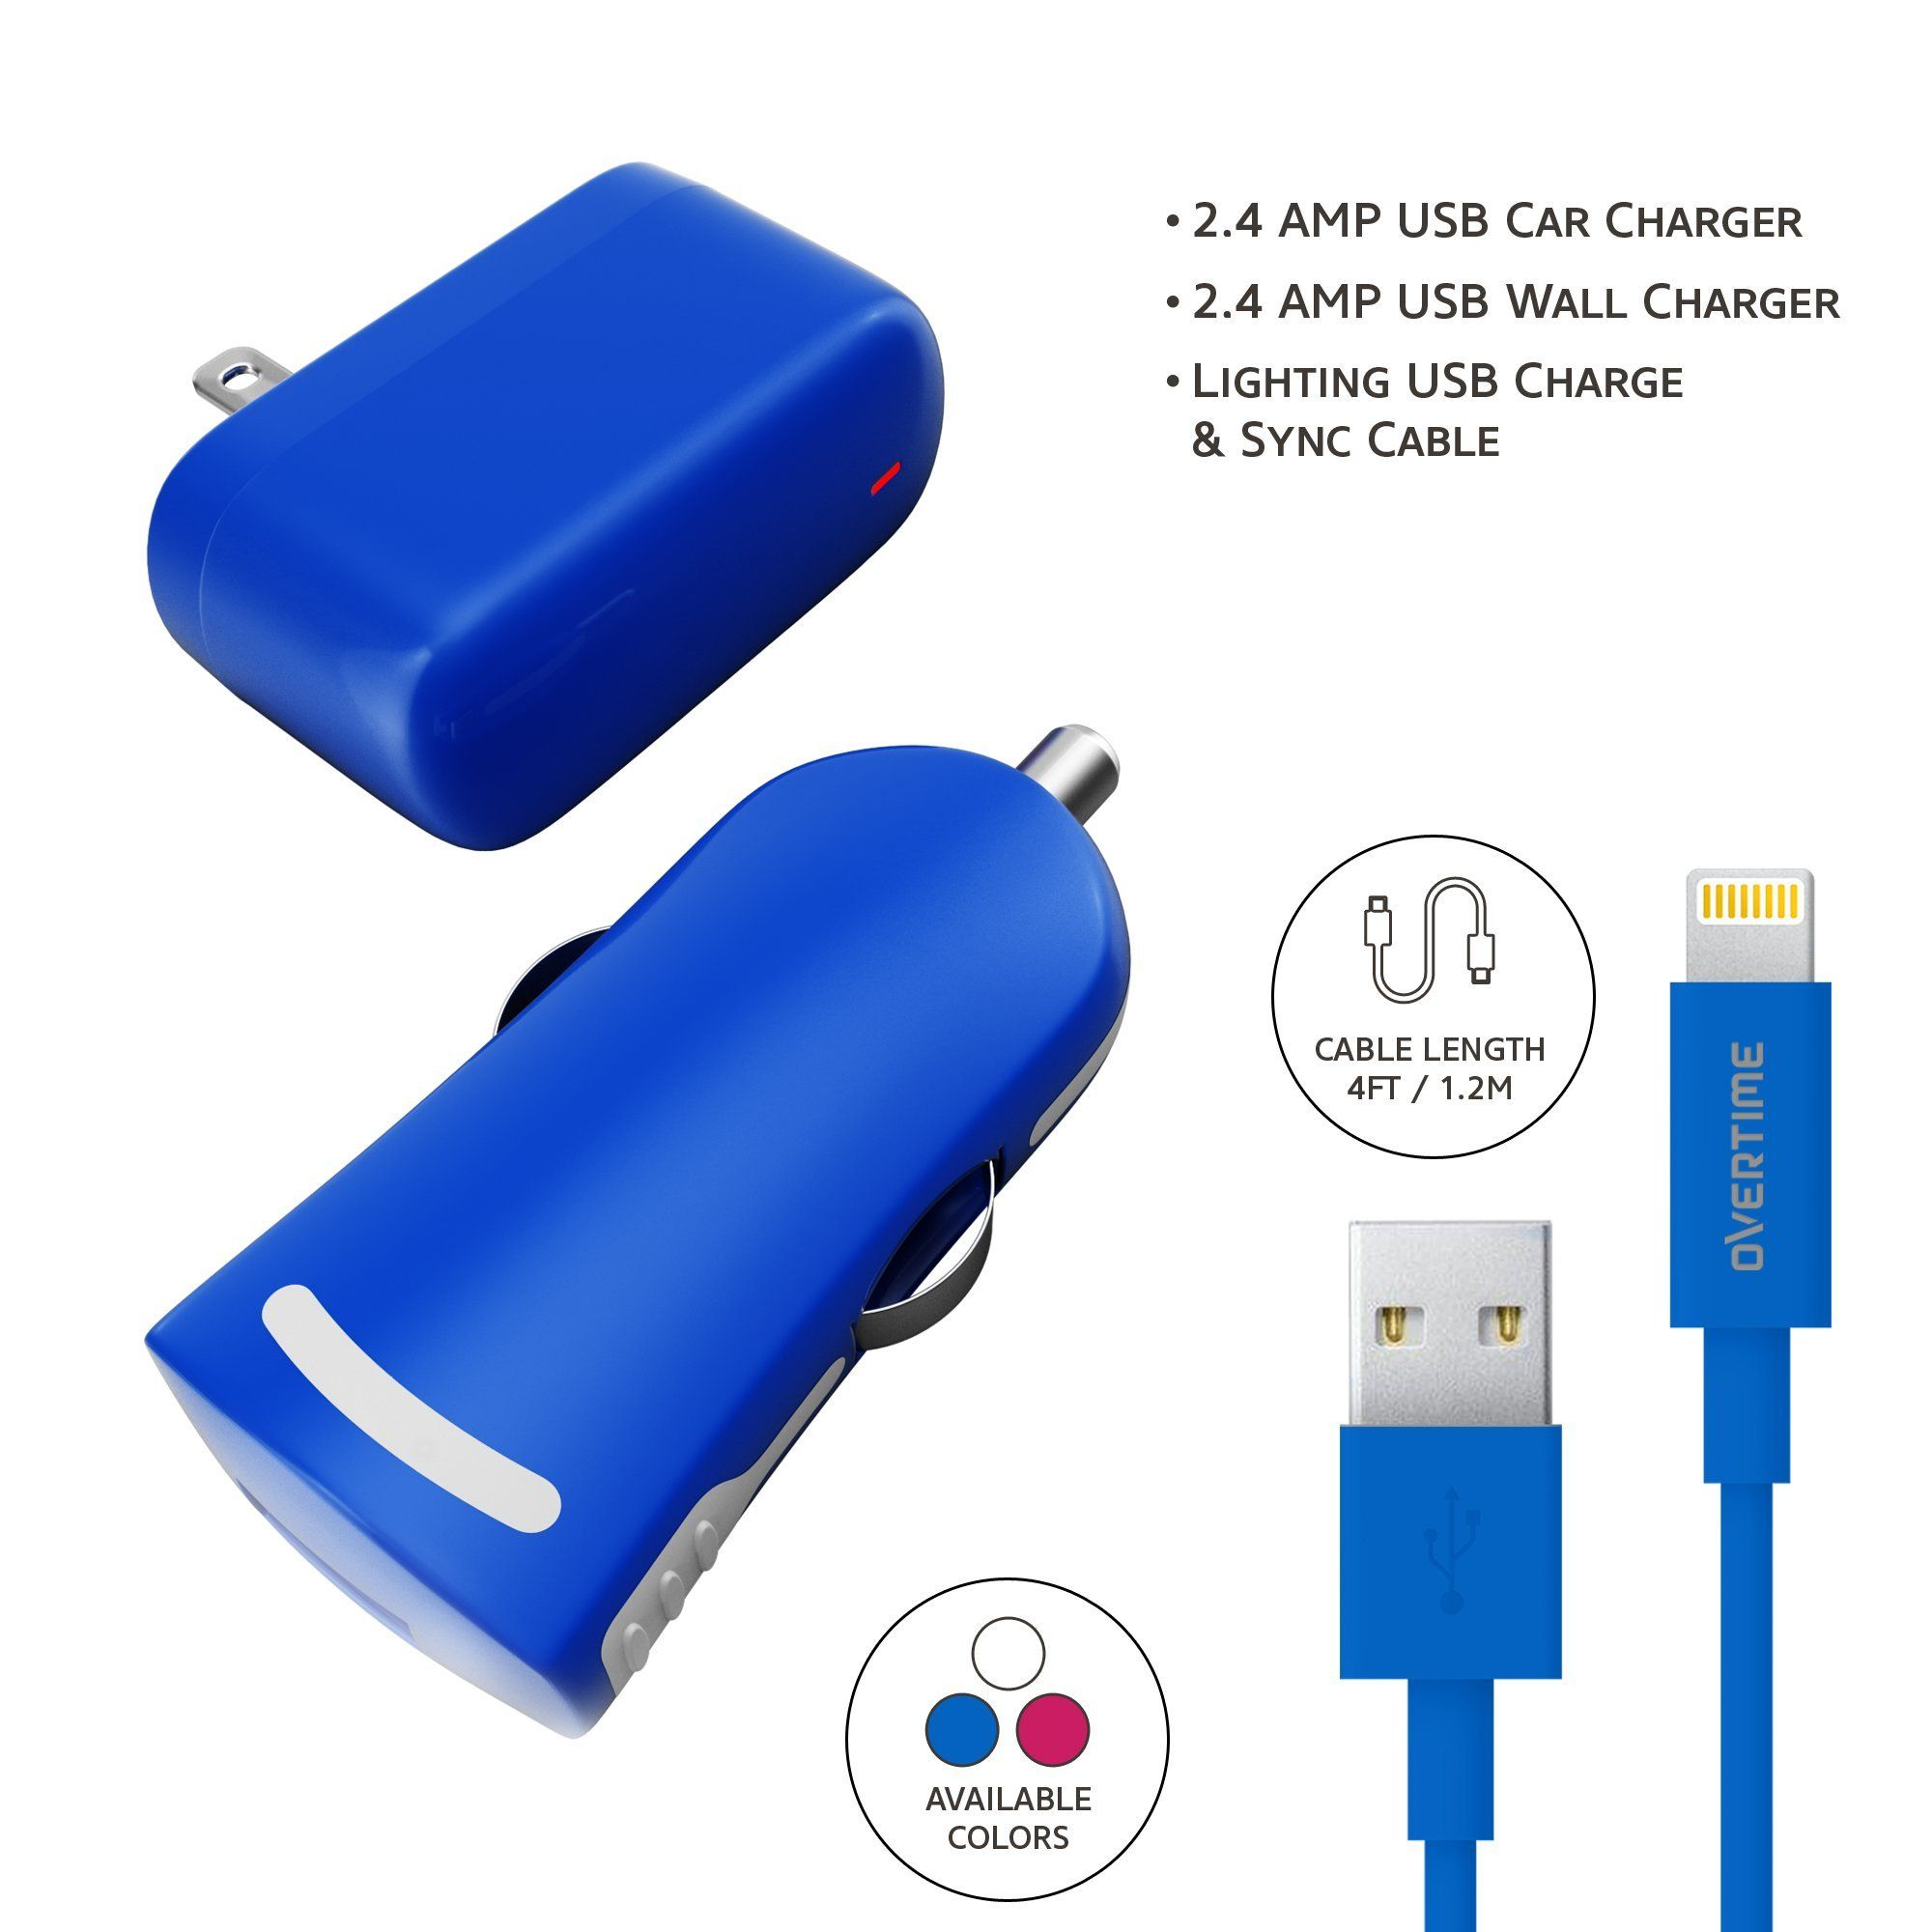 Apple Certified Home Charger Adapter And Lightning Cable With Car